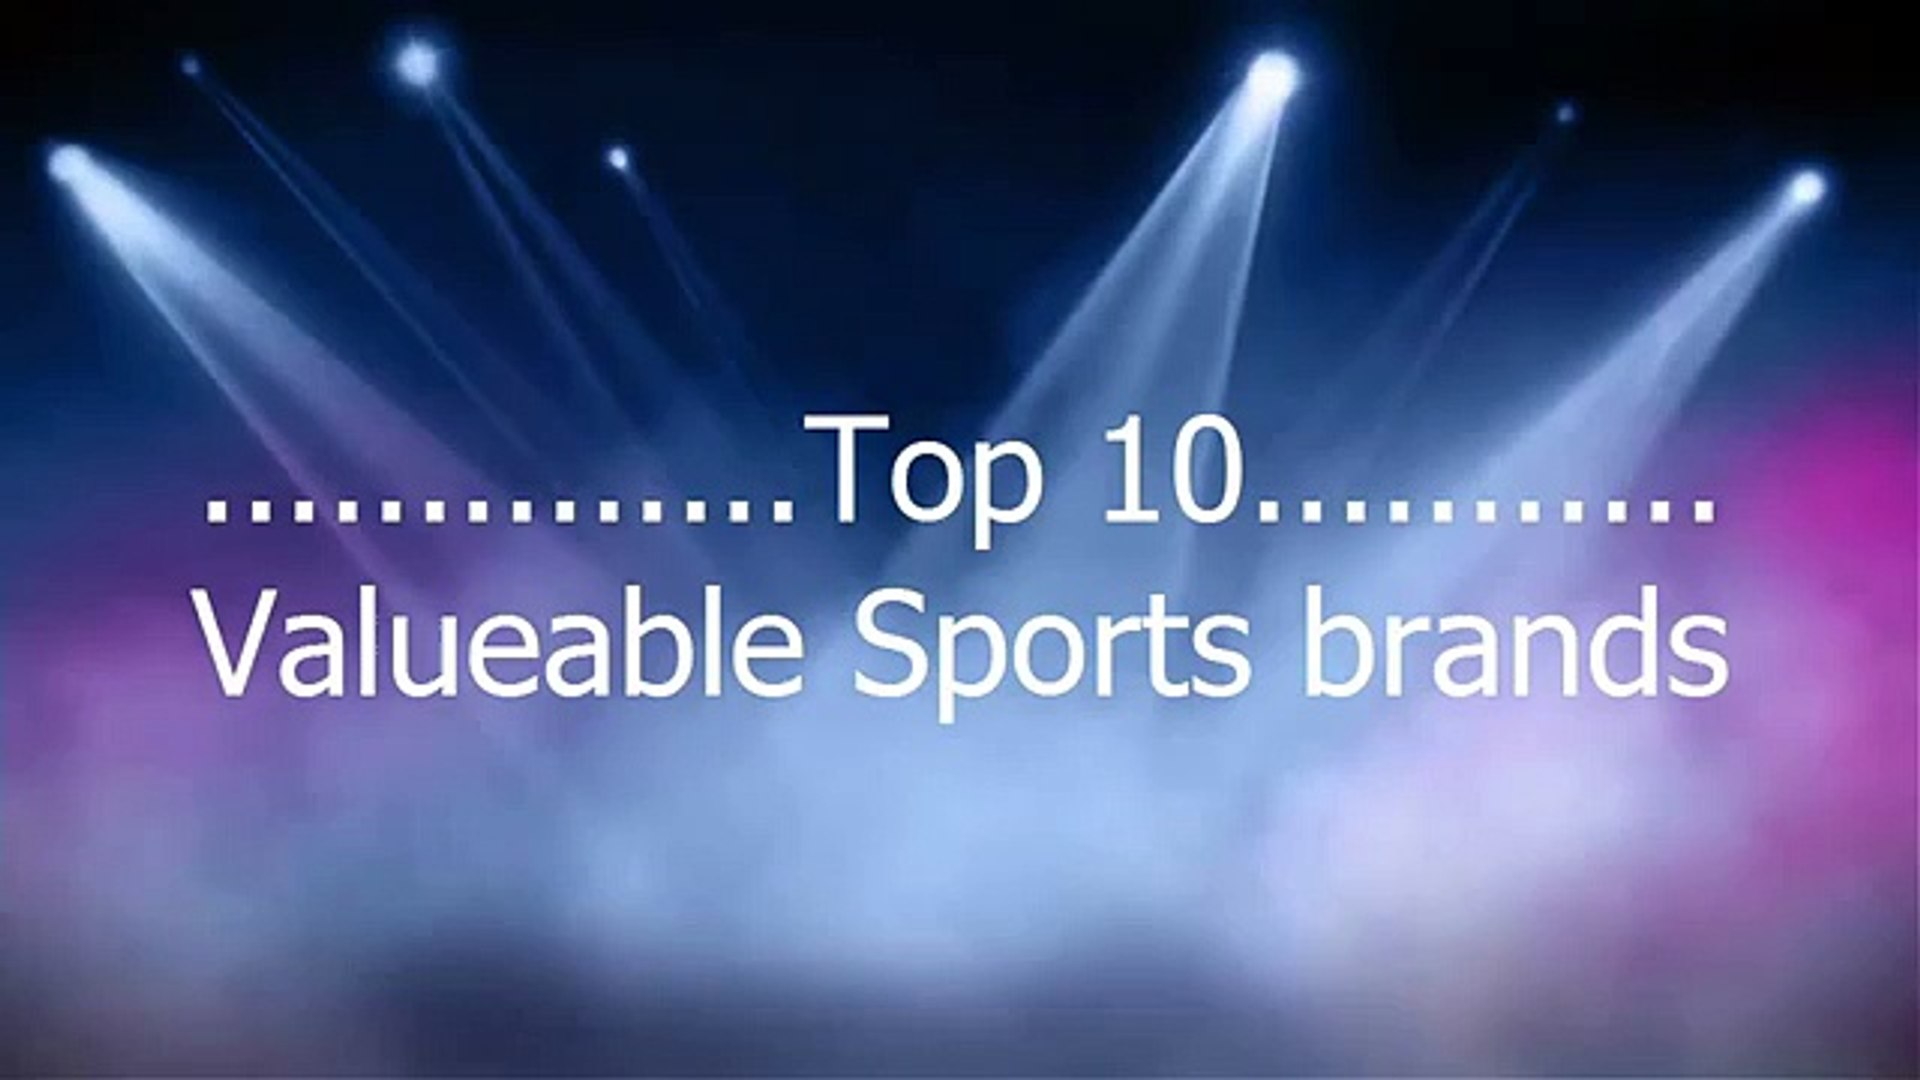 Top 10 Valueable sports brands,Valueable sports brands,Top 10  sports brands,10 Valueable brands (Wo